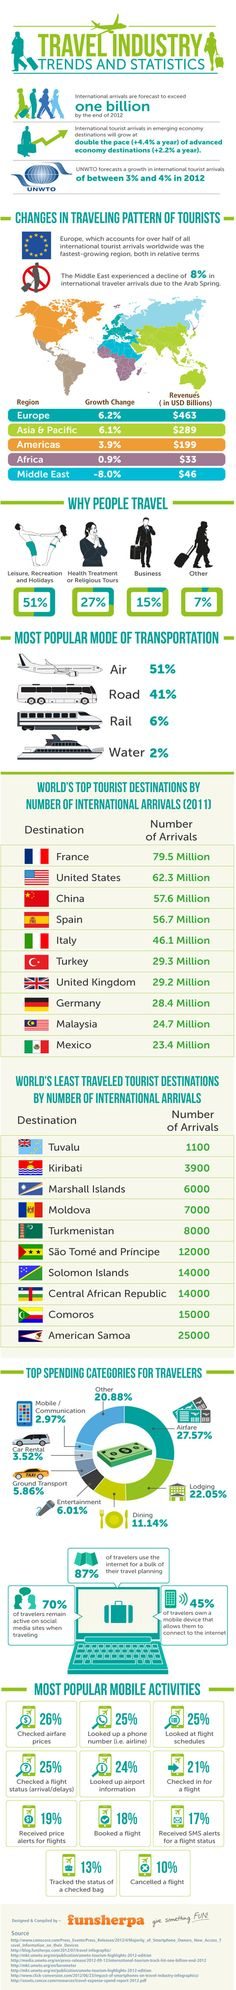 Travel industry trends and statistics #infographic